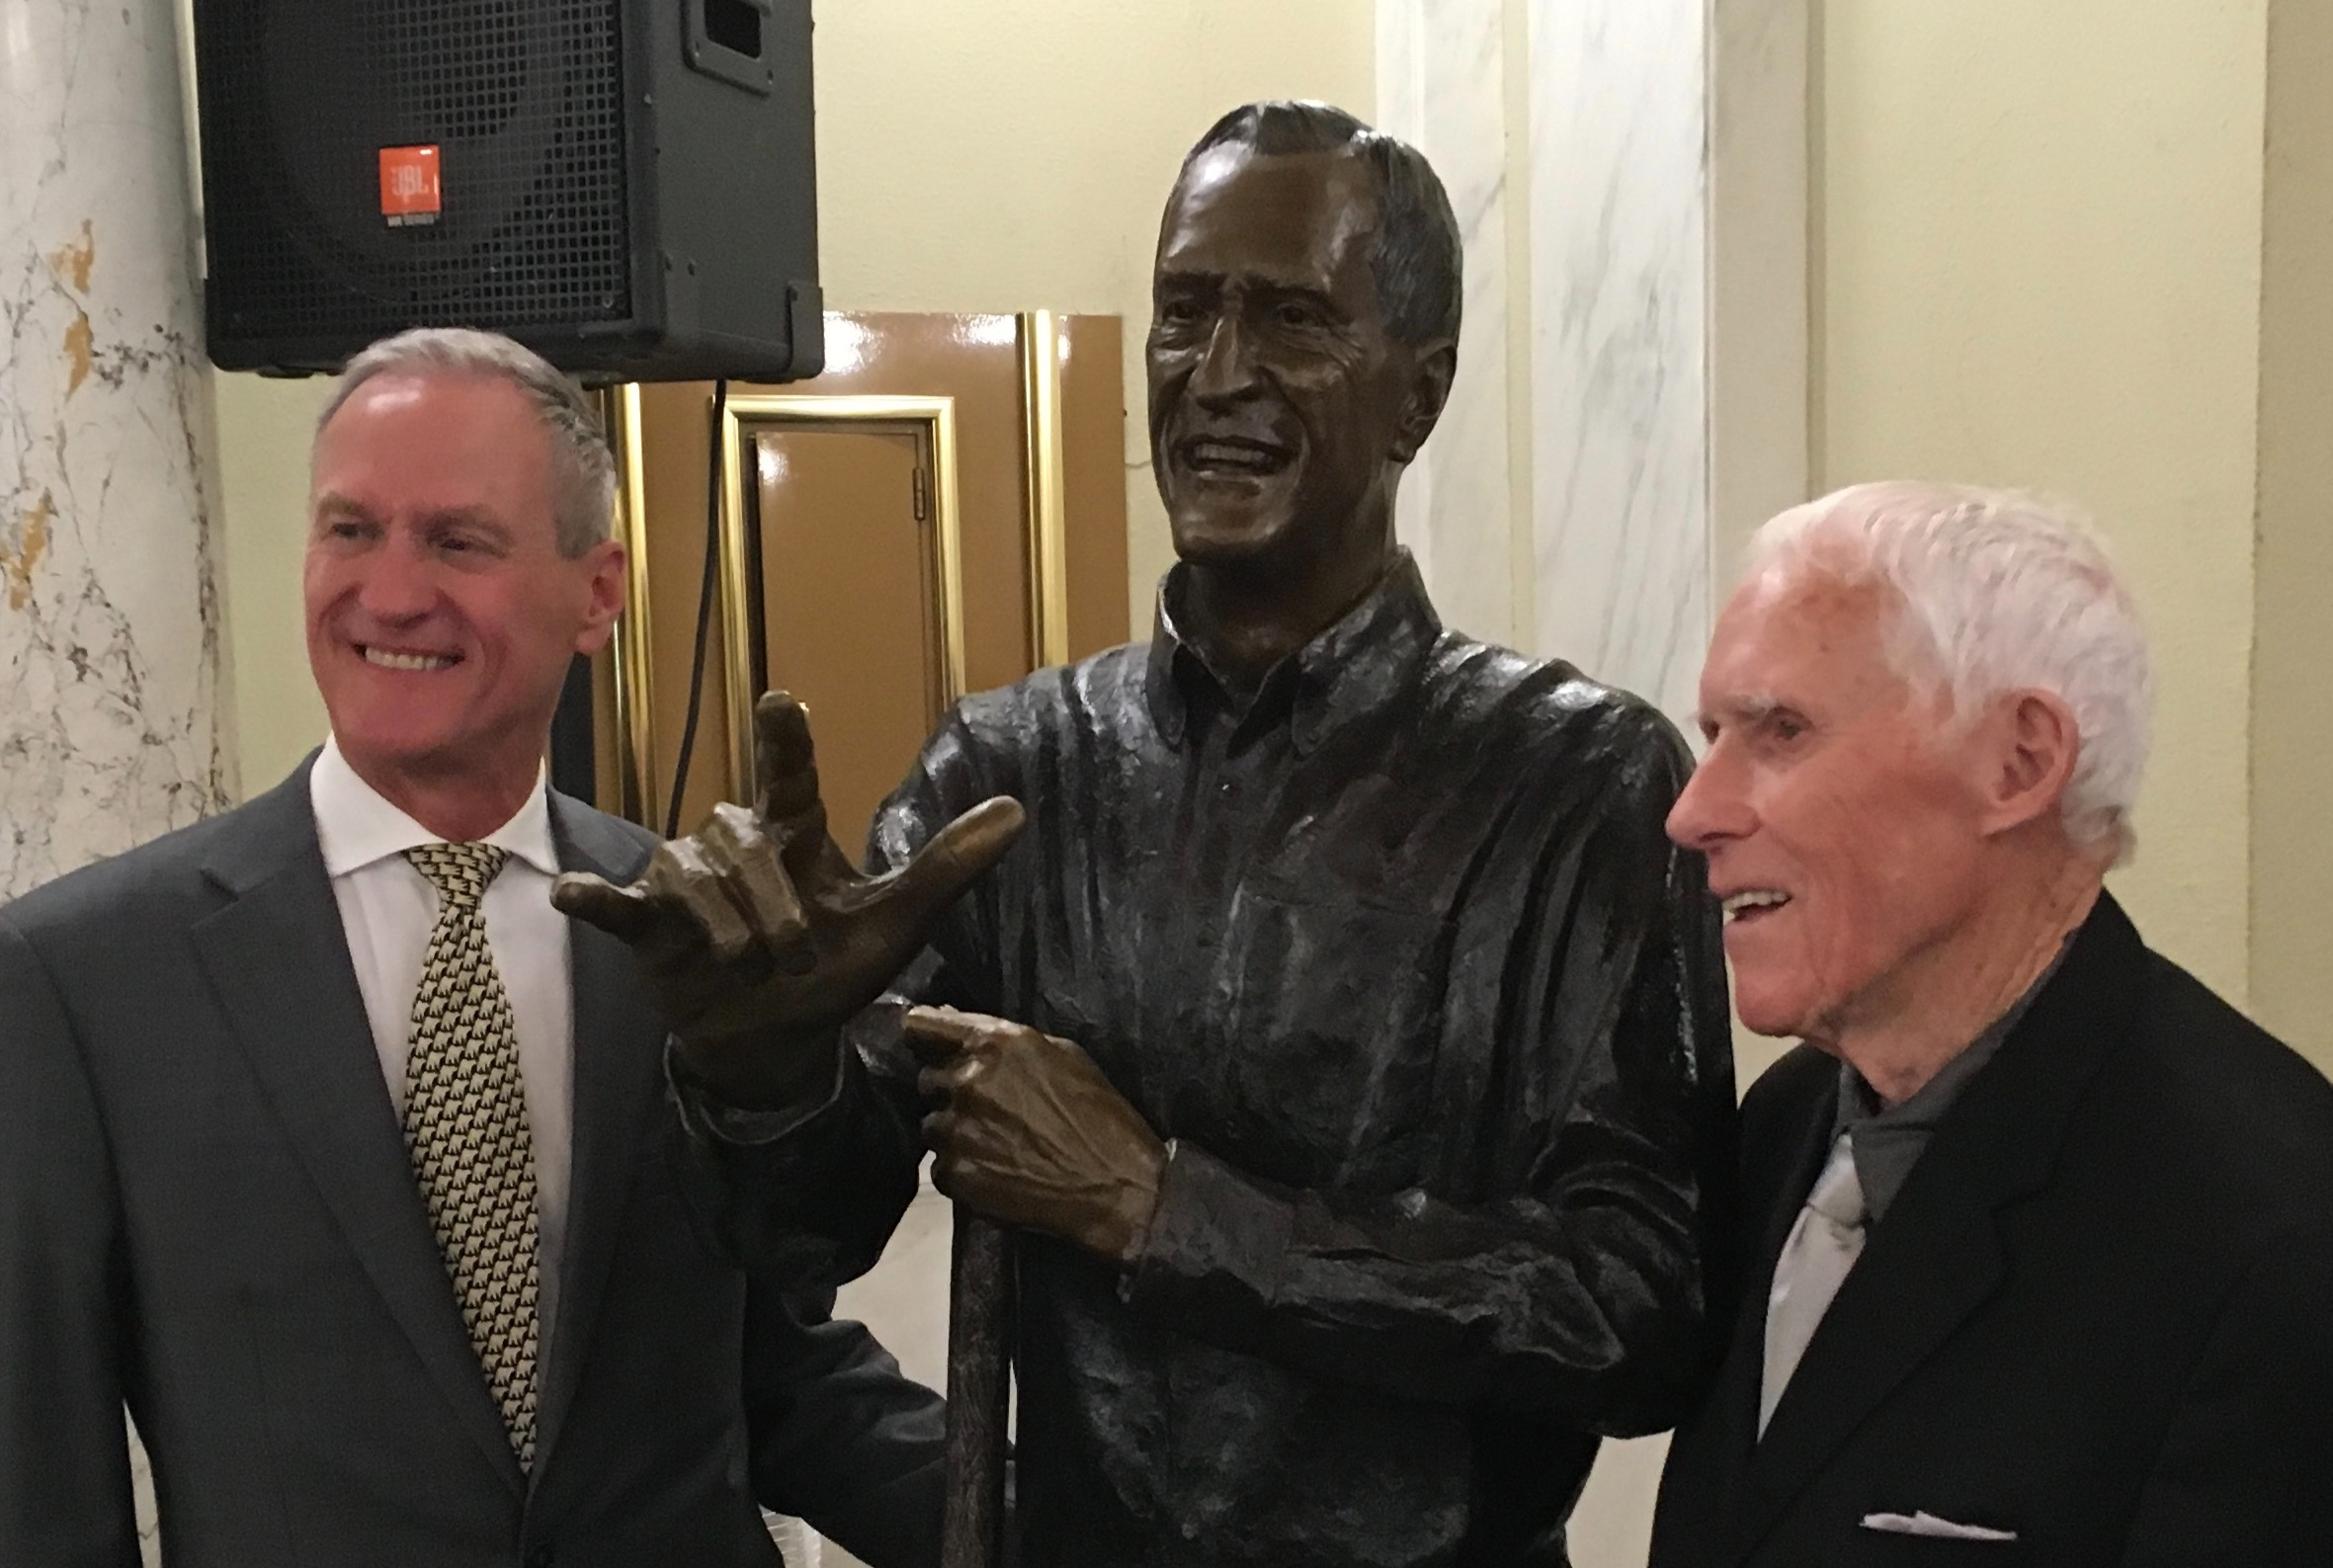 Former Governors Dennis Daugaard and Frank Farrar at the 2019 Trail of Governors unveiling ceremony.